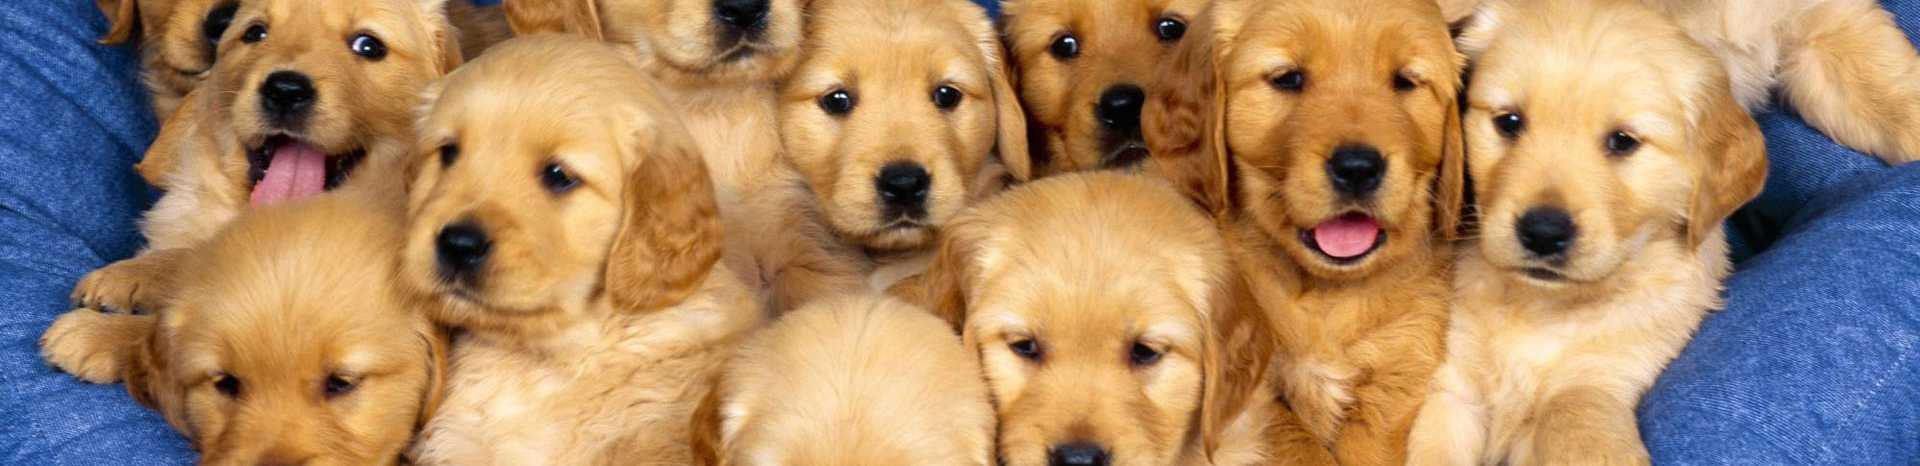 Finals week dog days no more with therapy pups